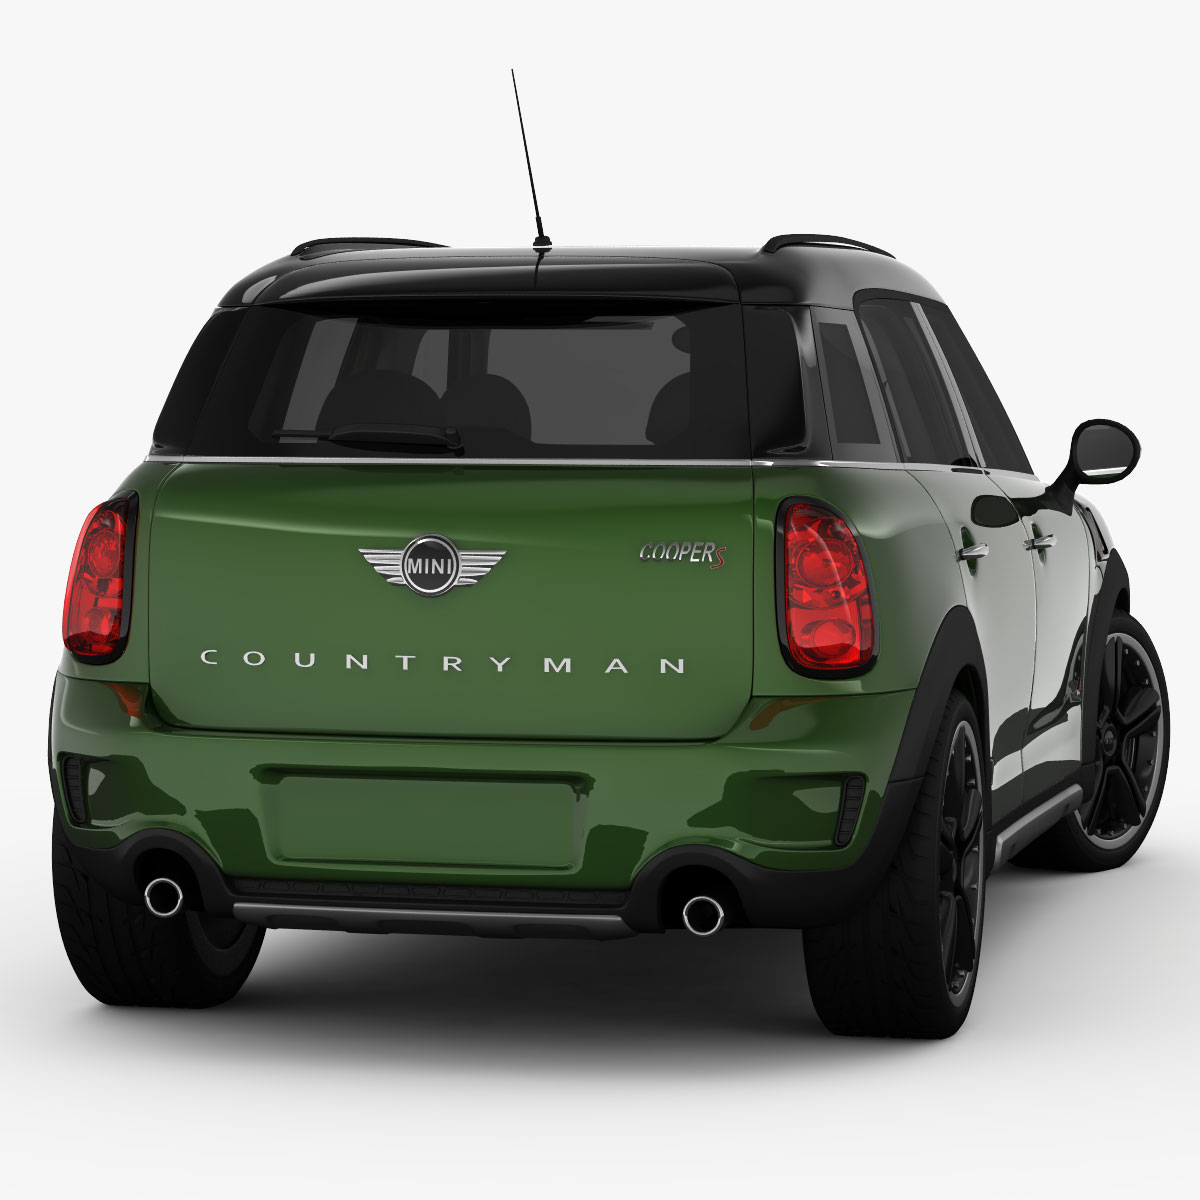 mini cooper s countryman 2015 3d model. Black Bedroom Furniture Sets. Home Design Ideas